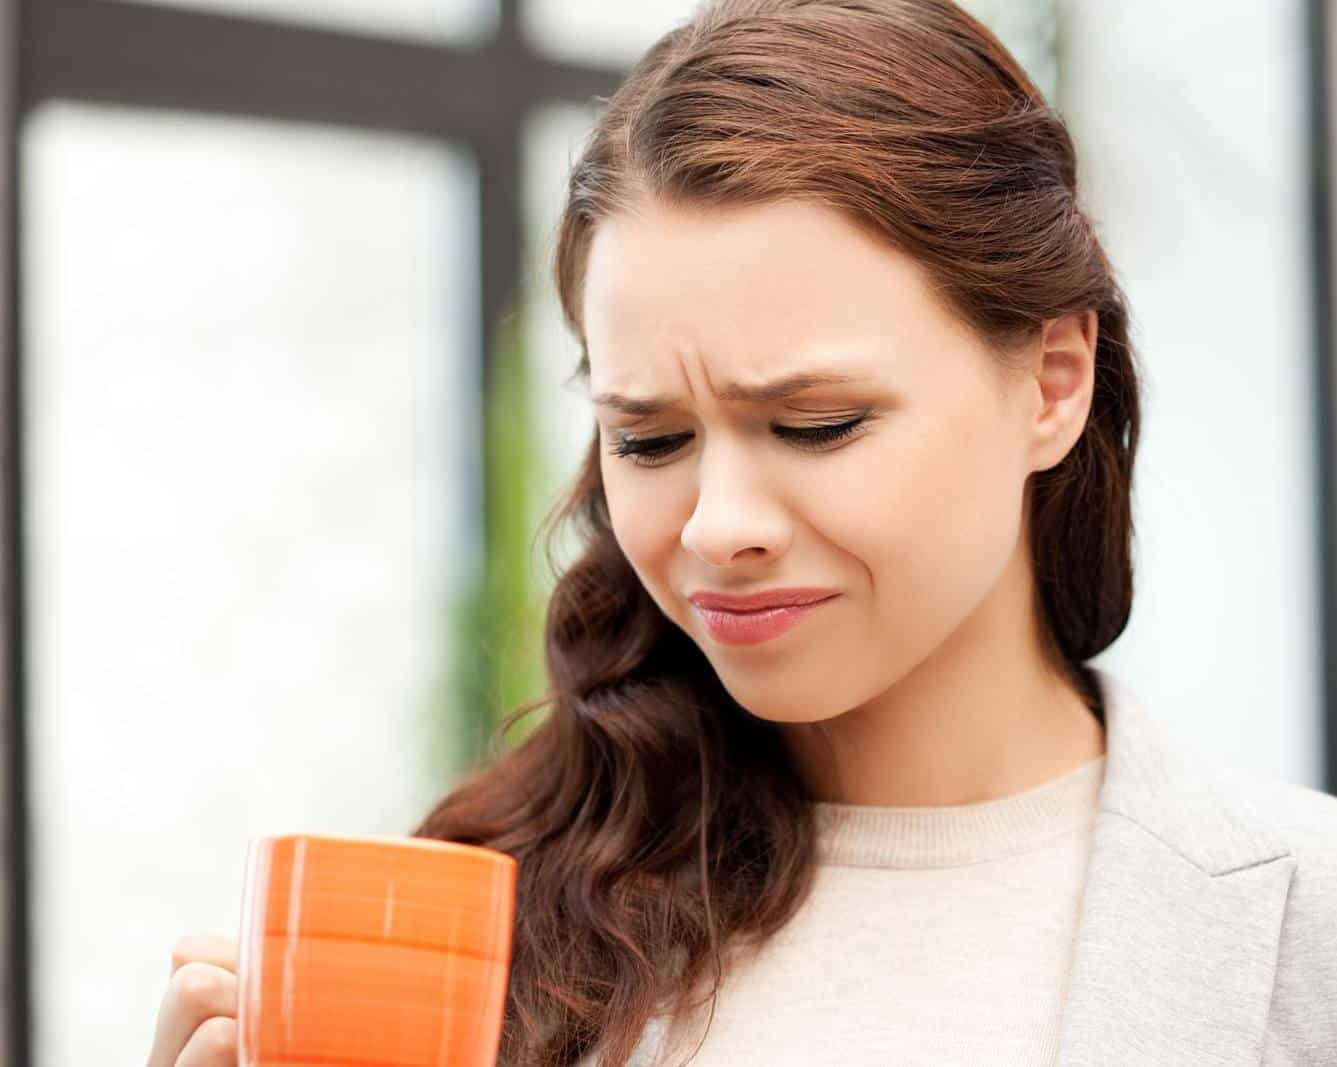 Concerned look on woman's face while looking into mug